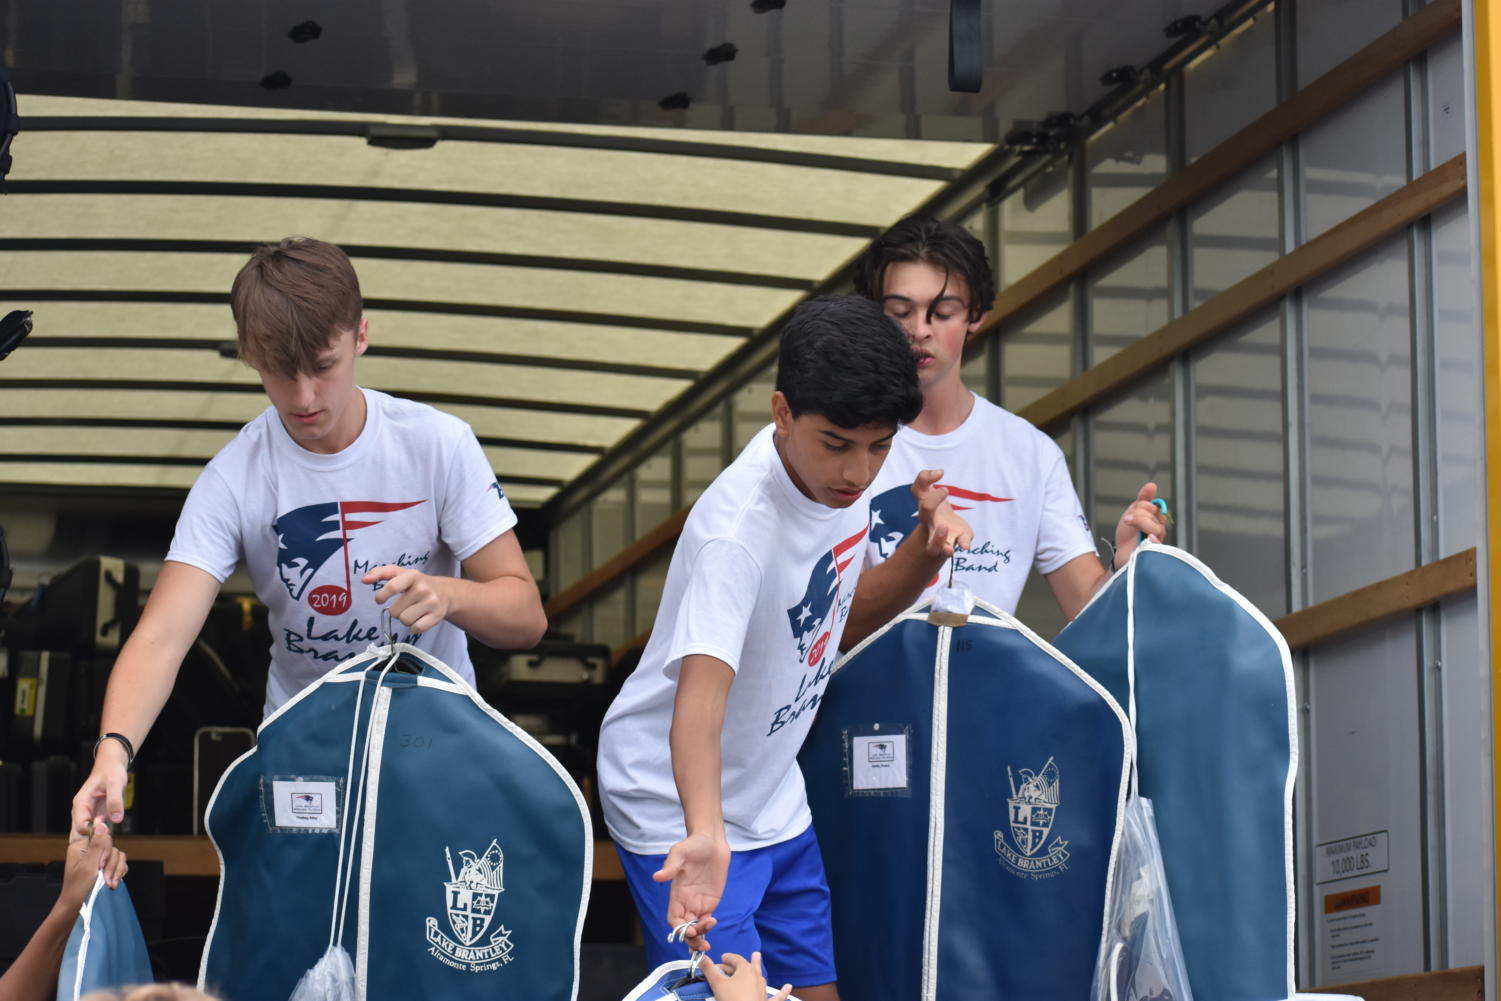 Students apart of the bands loading crew help unload the uniforms for the Lyman football game. During away games the band loads and unloads trucks of equipment, uniforms and instruments in order to perform at halftime.  Photo provided by: Angelina Jonkaitis